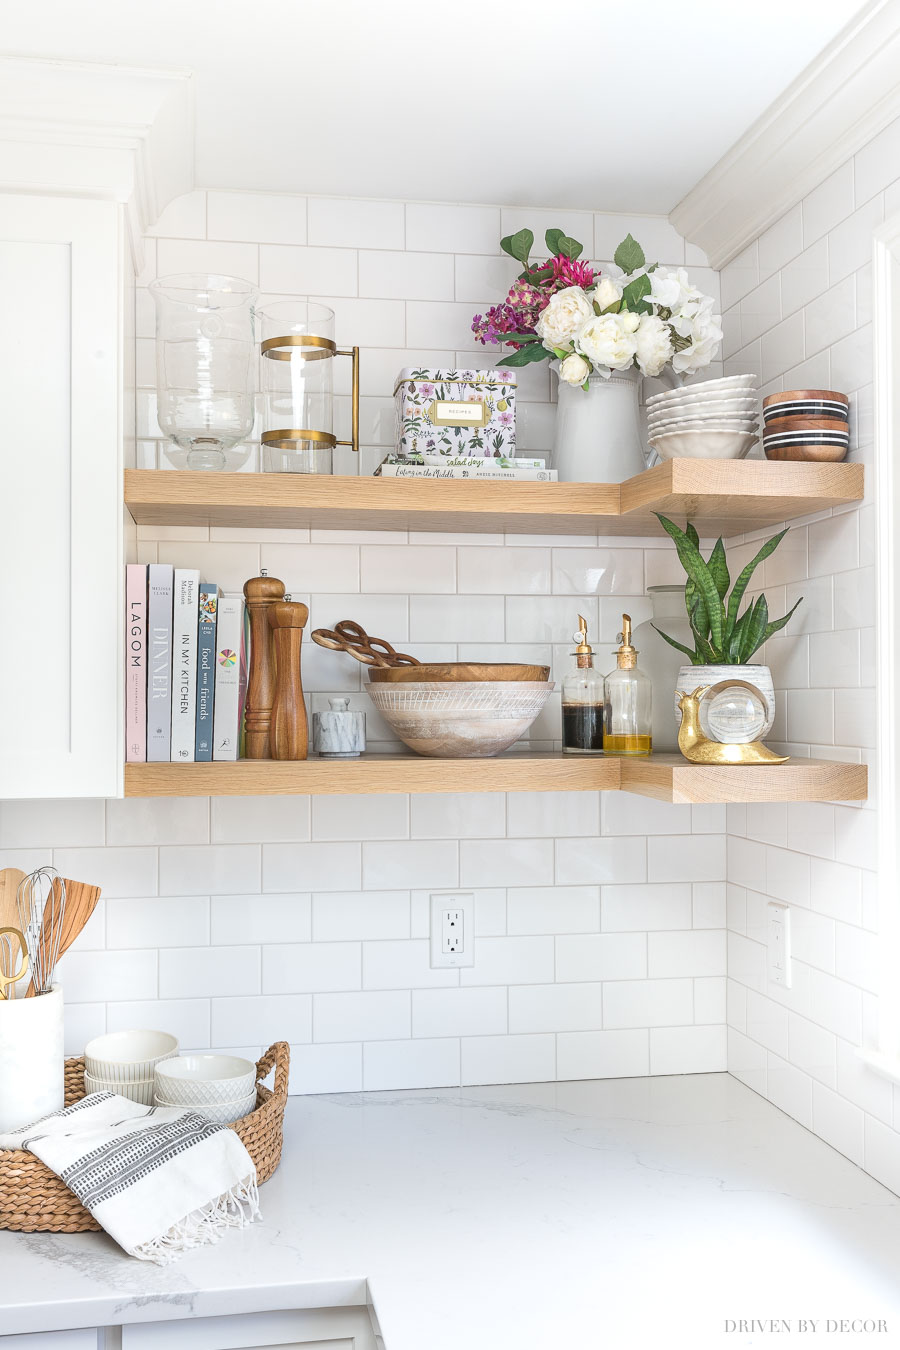 The floating wood shelves in our kitchen - love the warmth they add to this space!